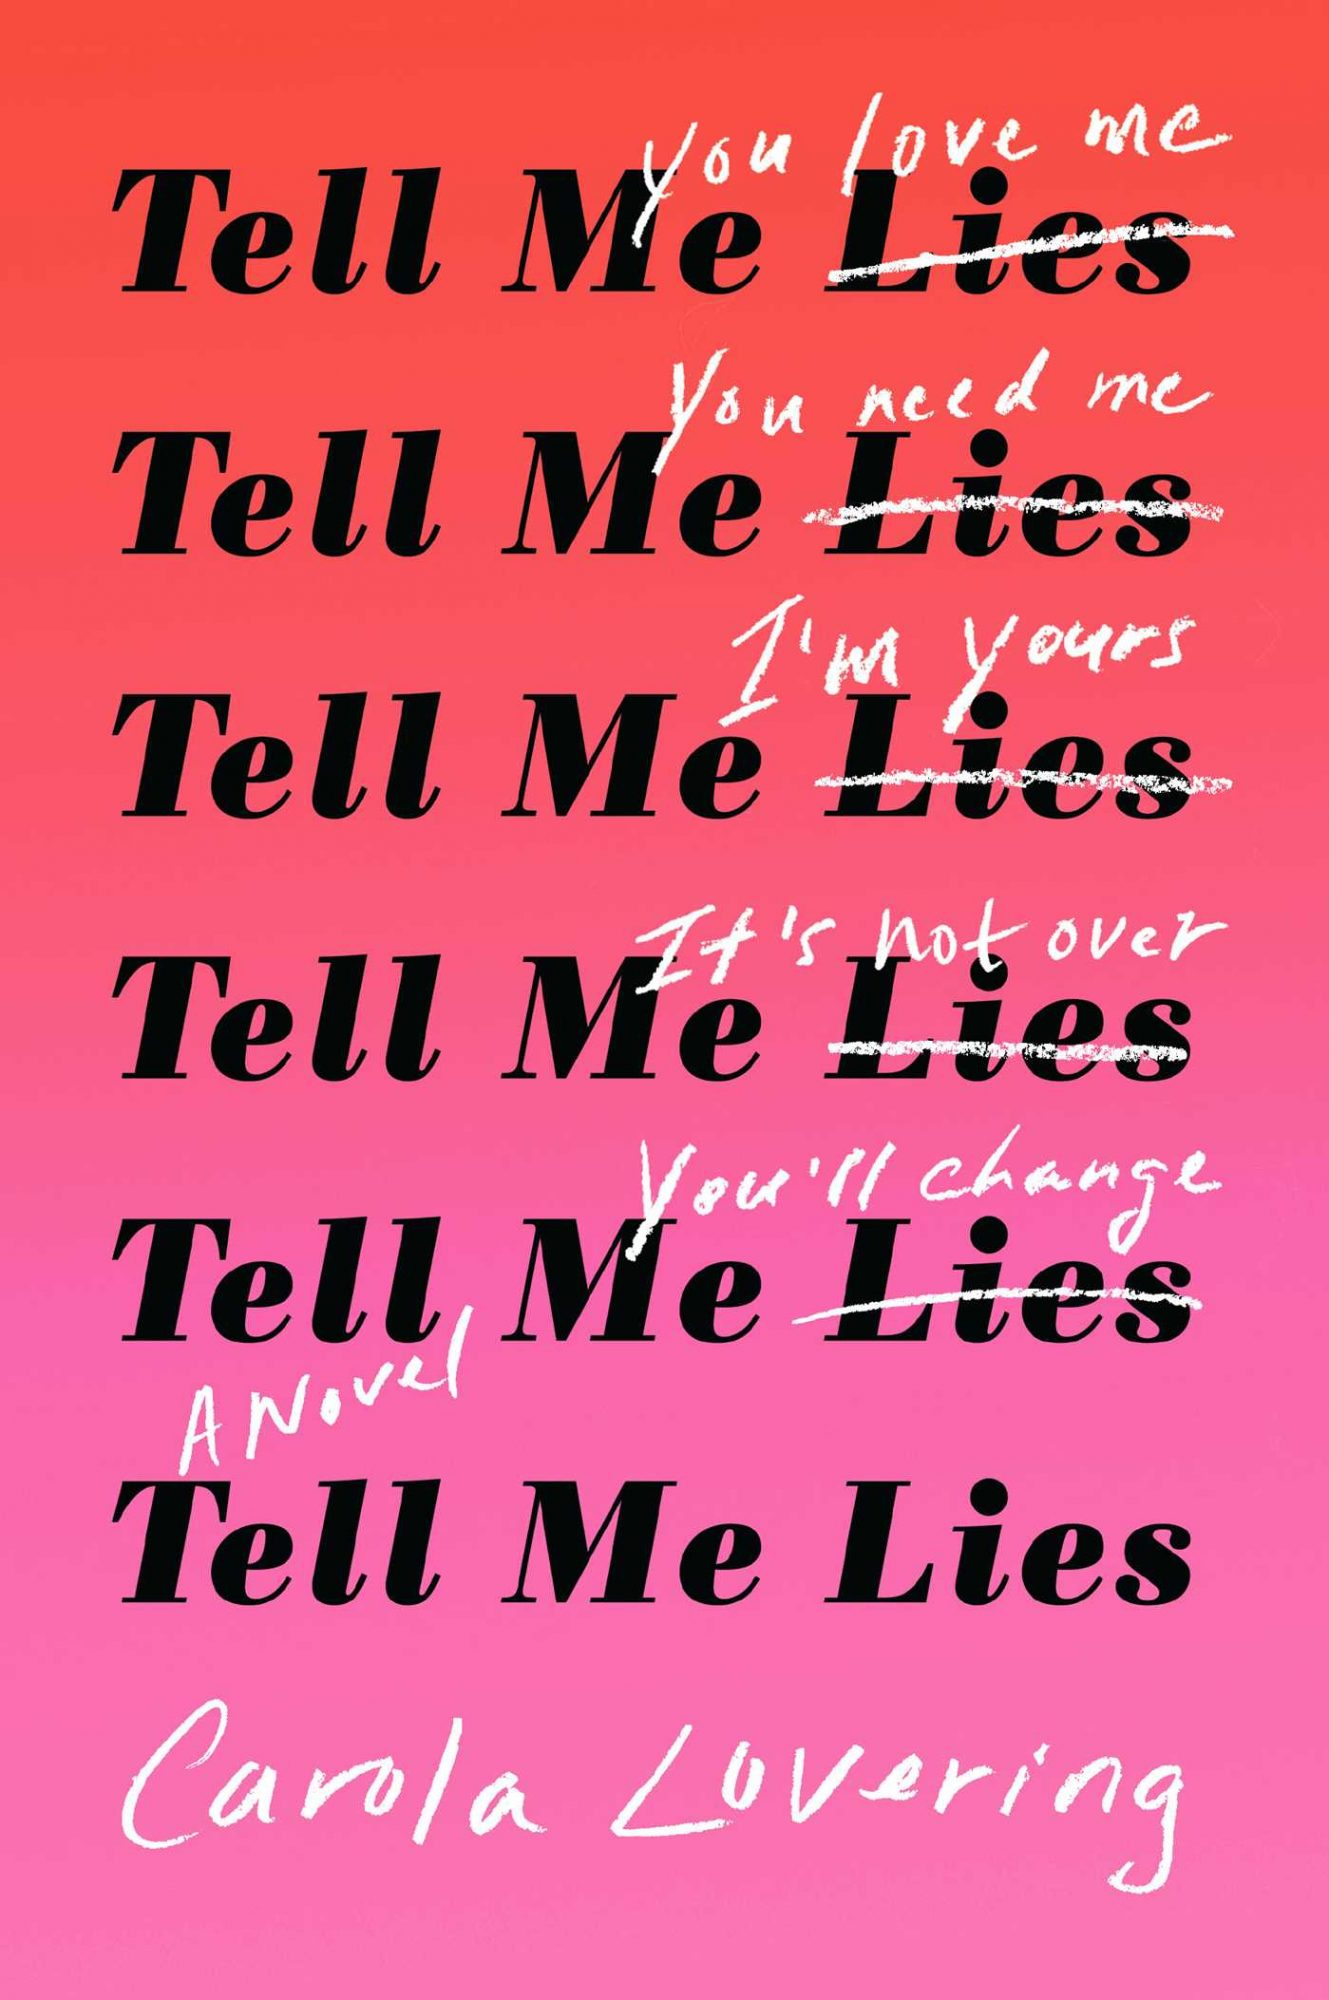 picture-of-tell-me-lies-book-photo.jpg